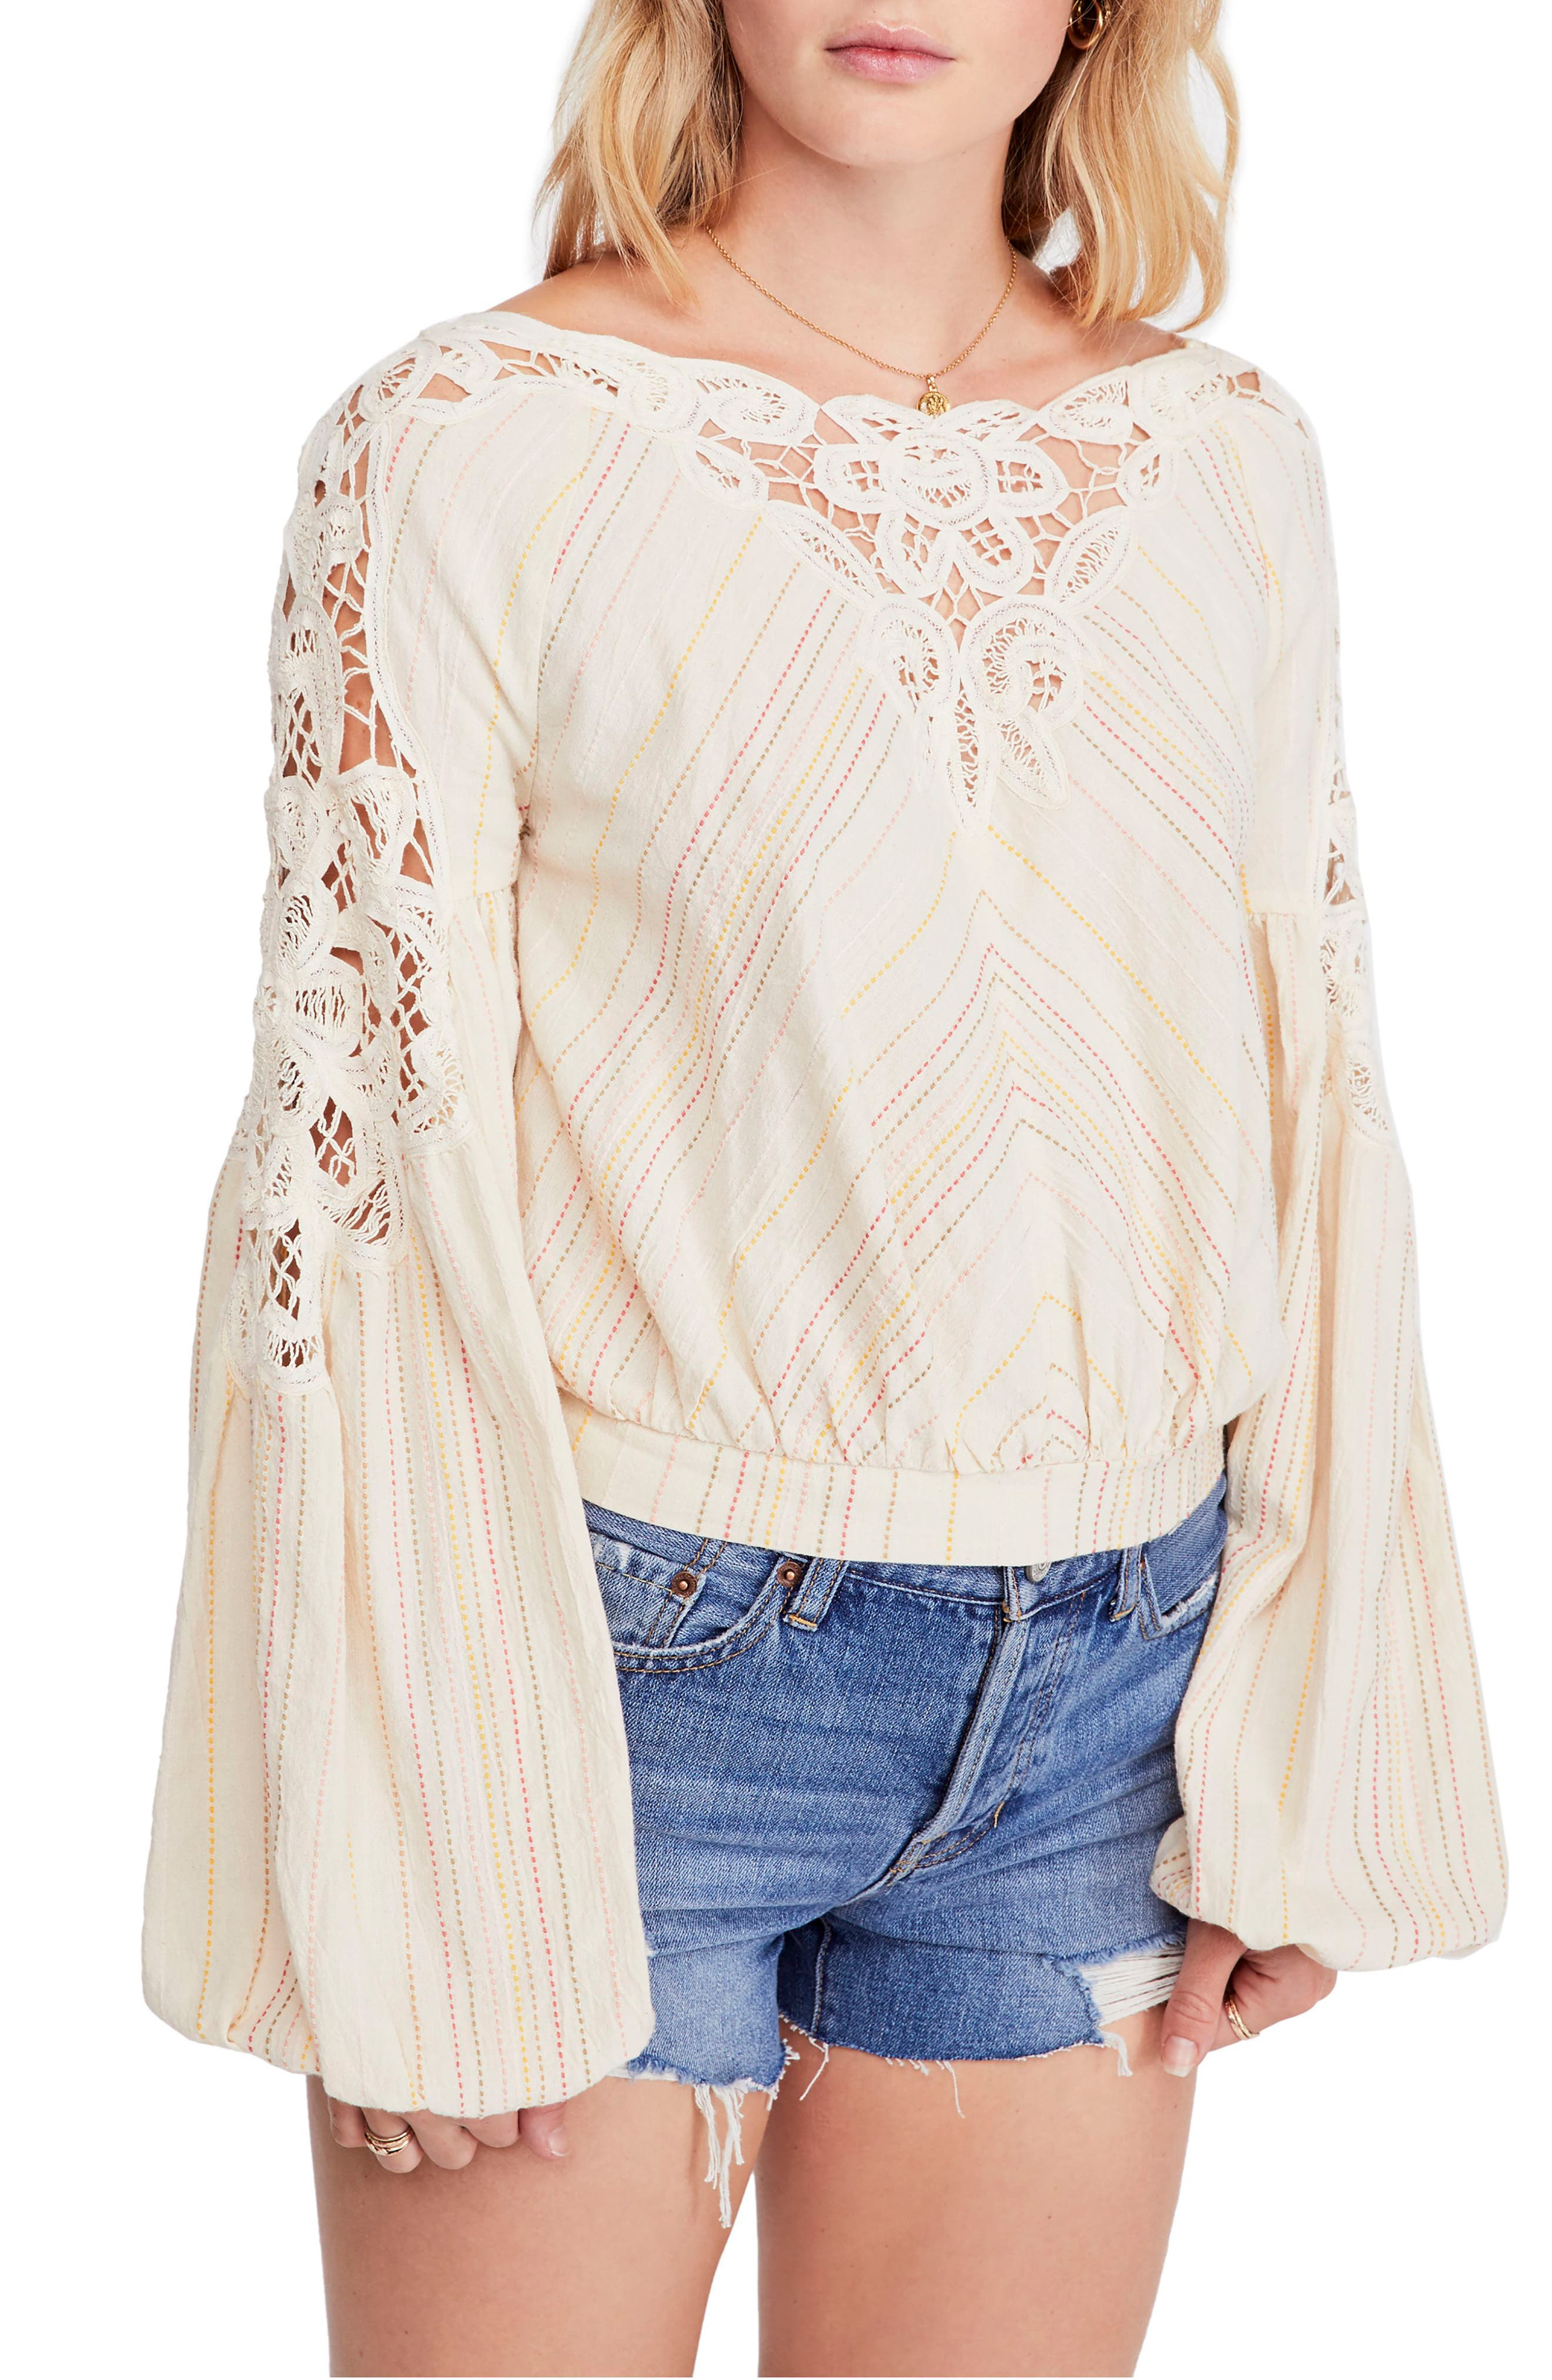 FREE PEOPLE,                             Floating Memories Top,                             Main thumbnail 1, color,                             NEUTRAL